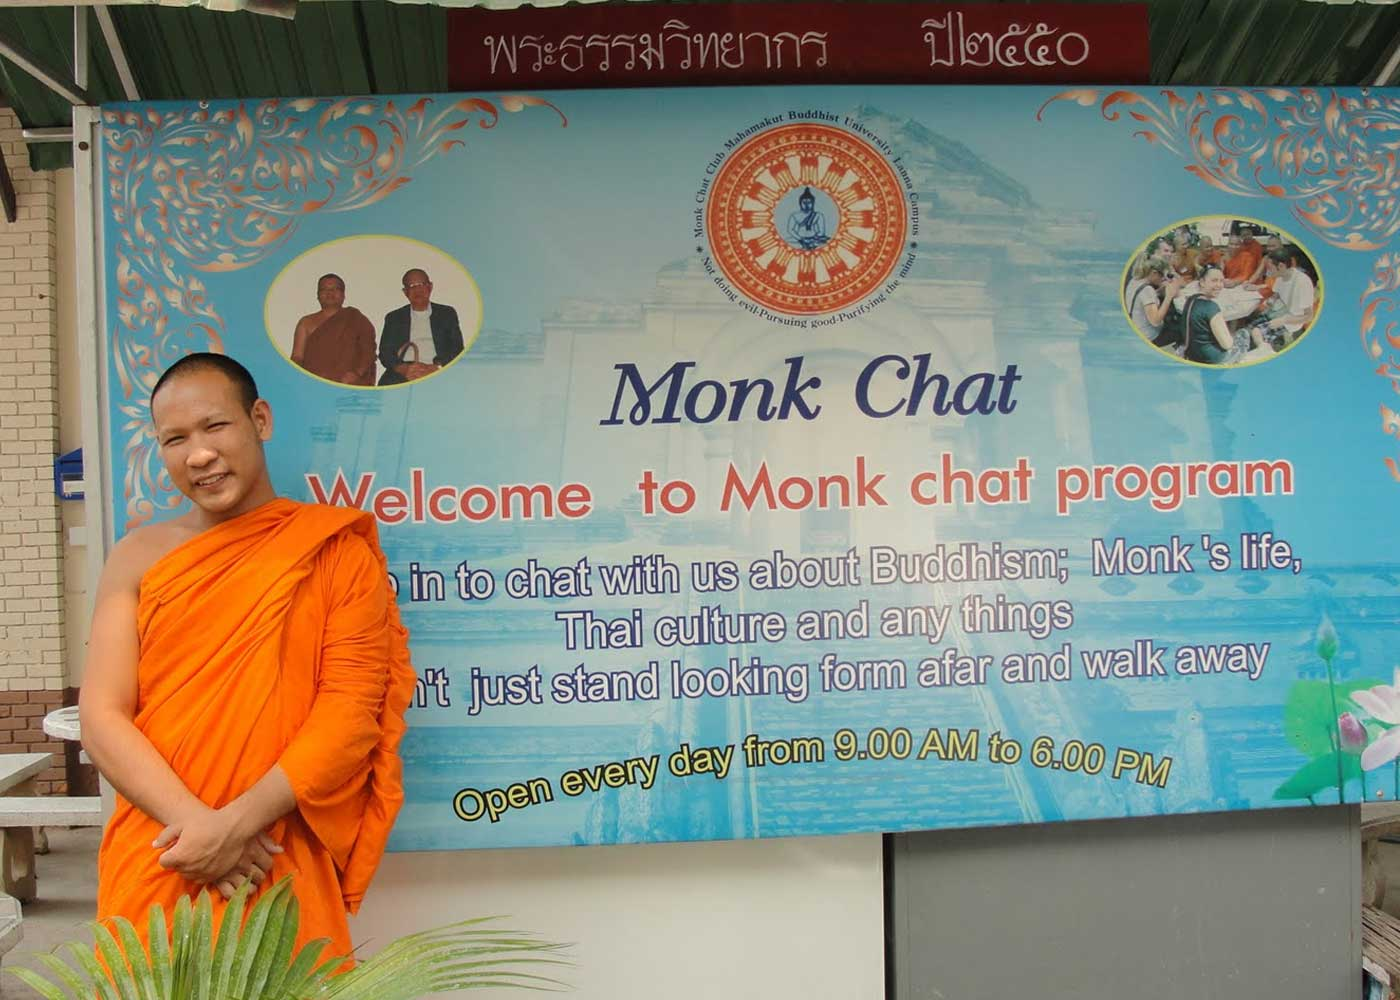 Monk Chat